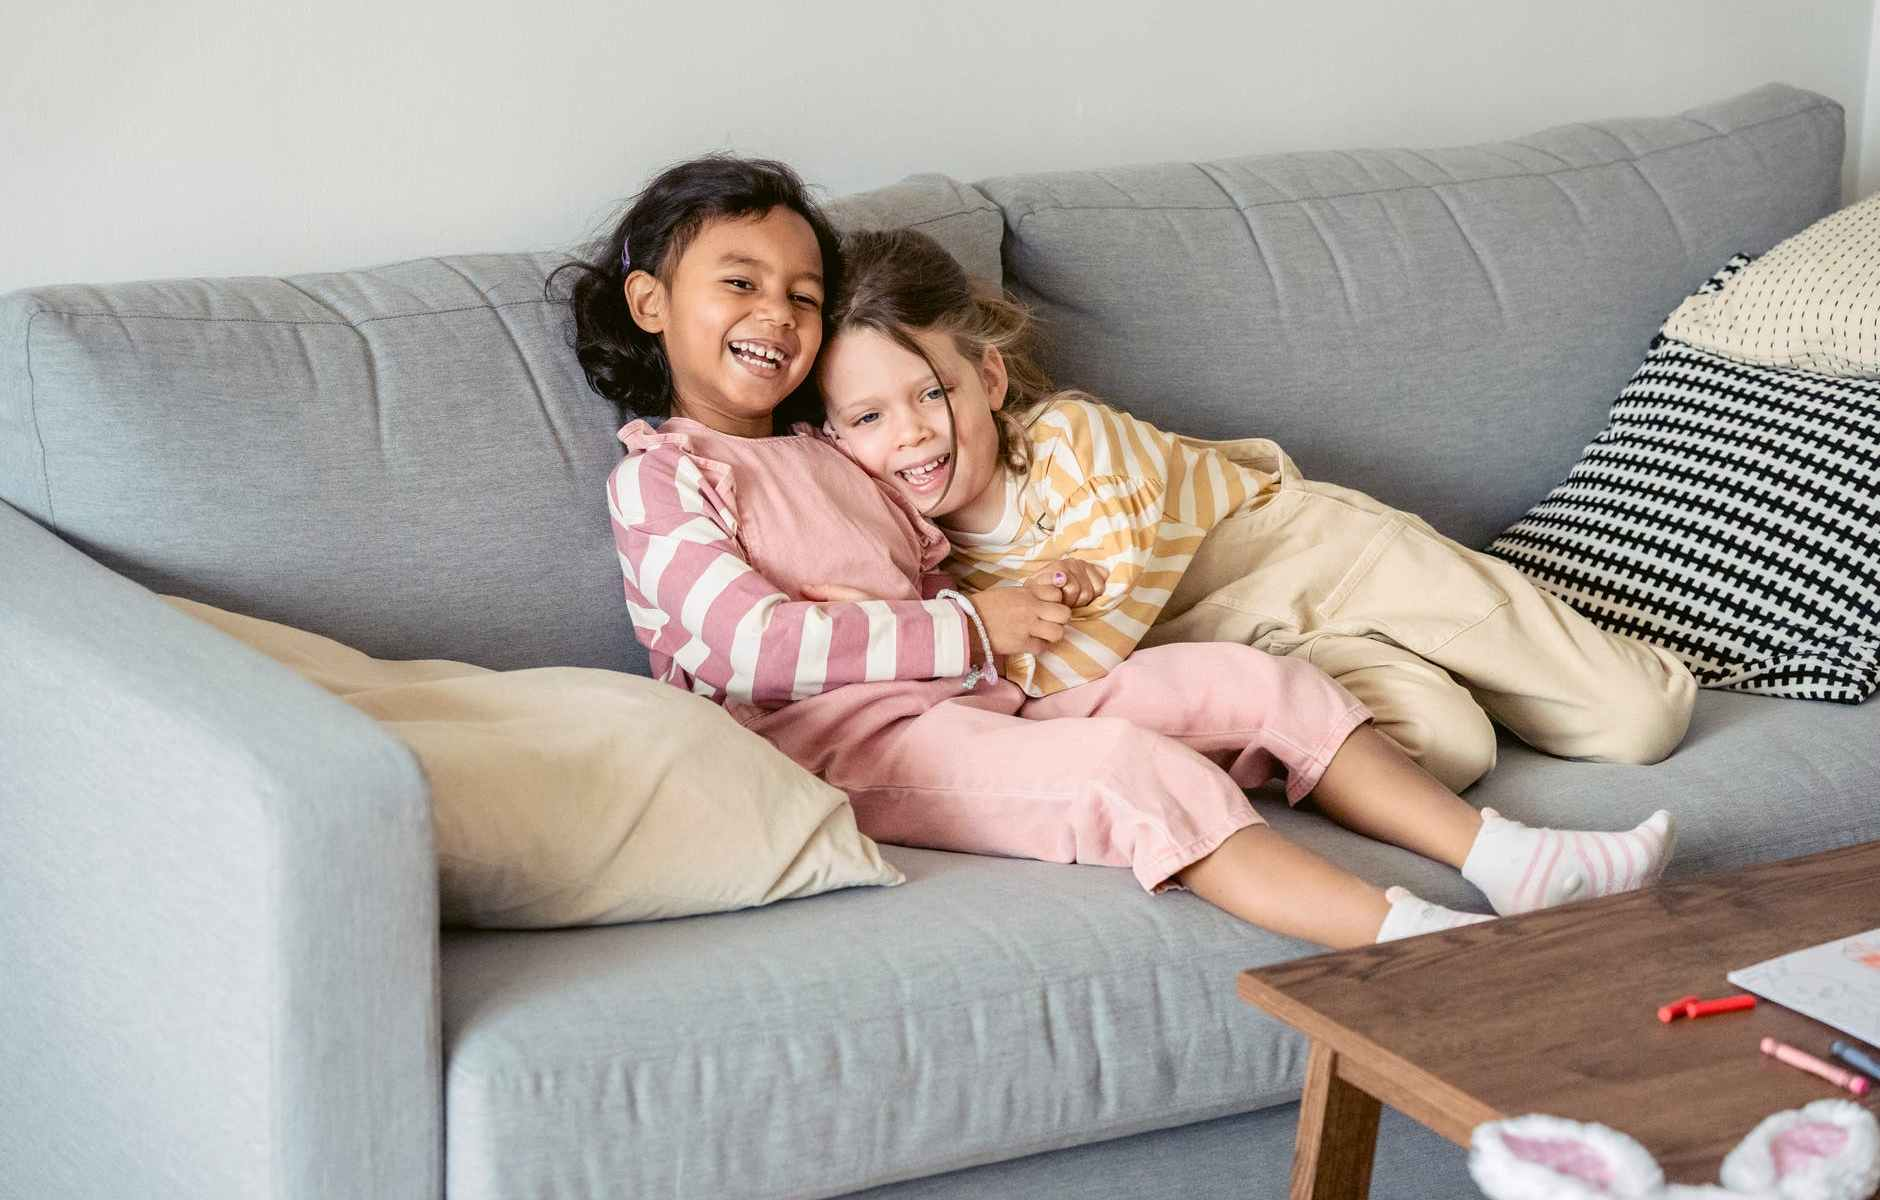 laughing diverse girls embracing gently on sofa